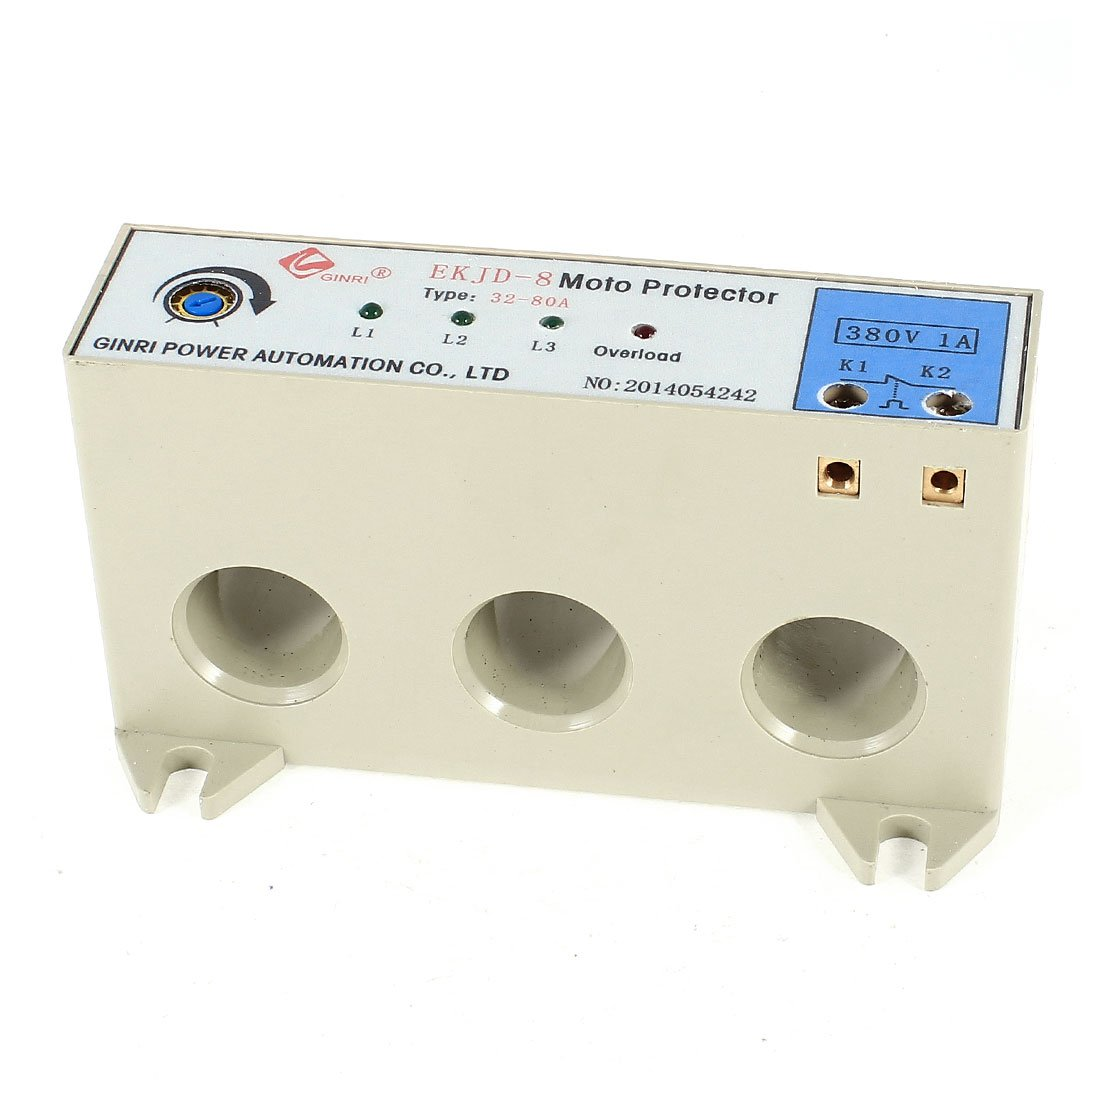 uxcell EKJD-9 3 Phase 32-80 Ampere Adjustable Current Motor Circuit Protector AC24-380V by uxcell (Image #1)